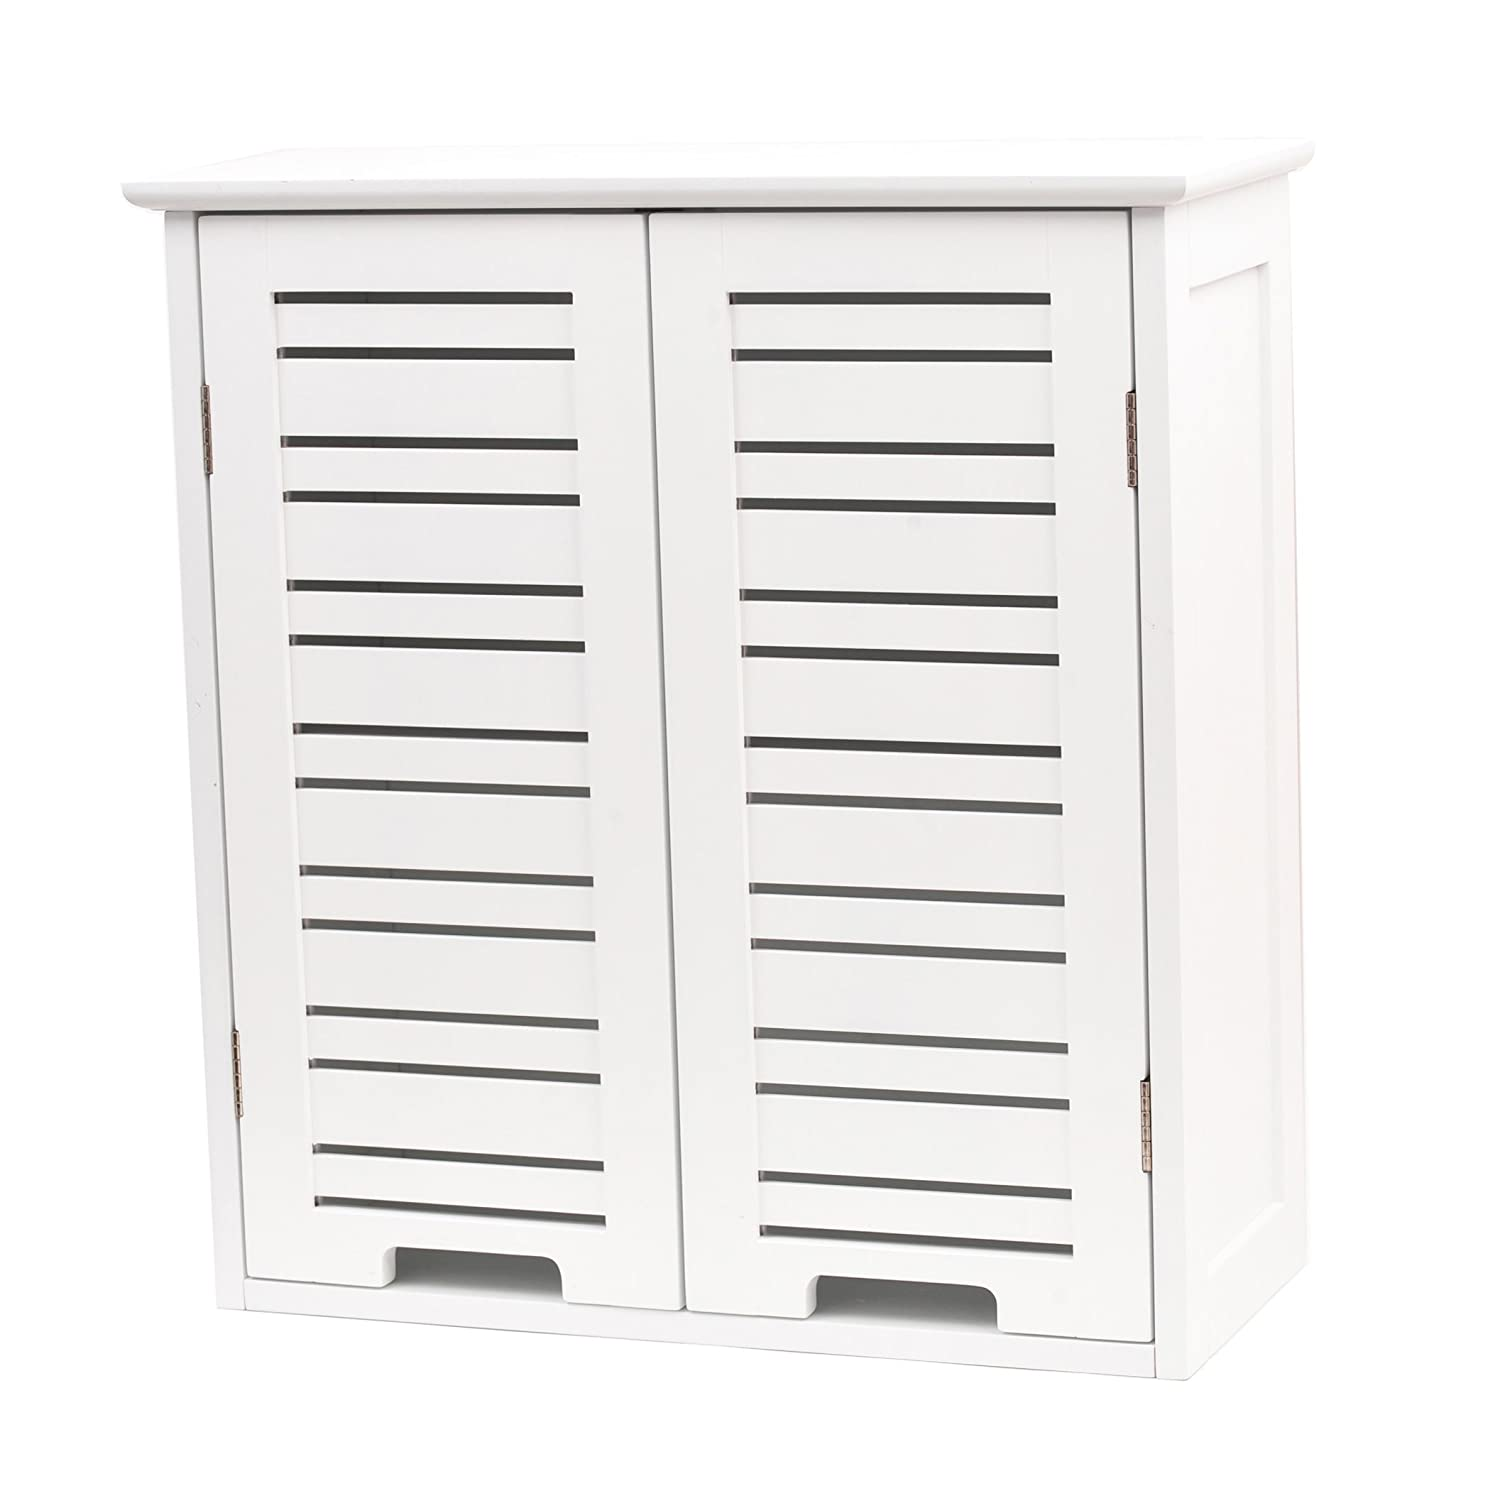 Bathroom wall cabinet - 2 doors - White TENDANCE 9903300